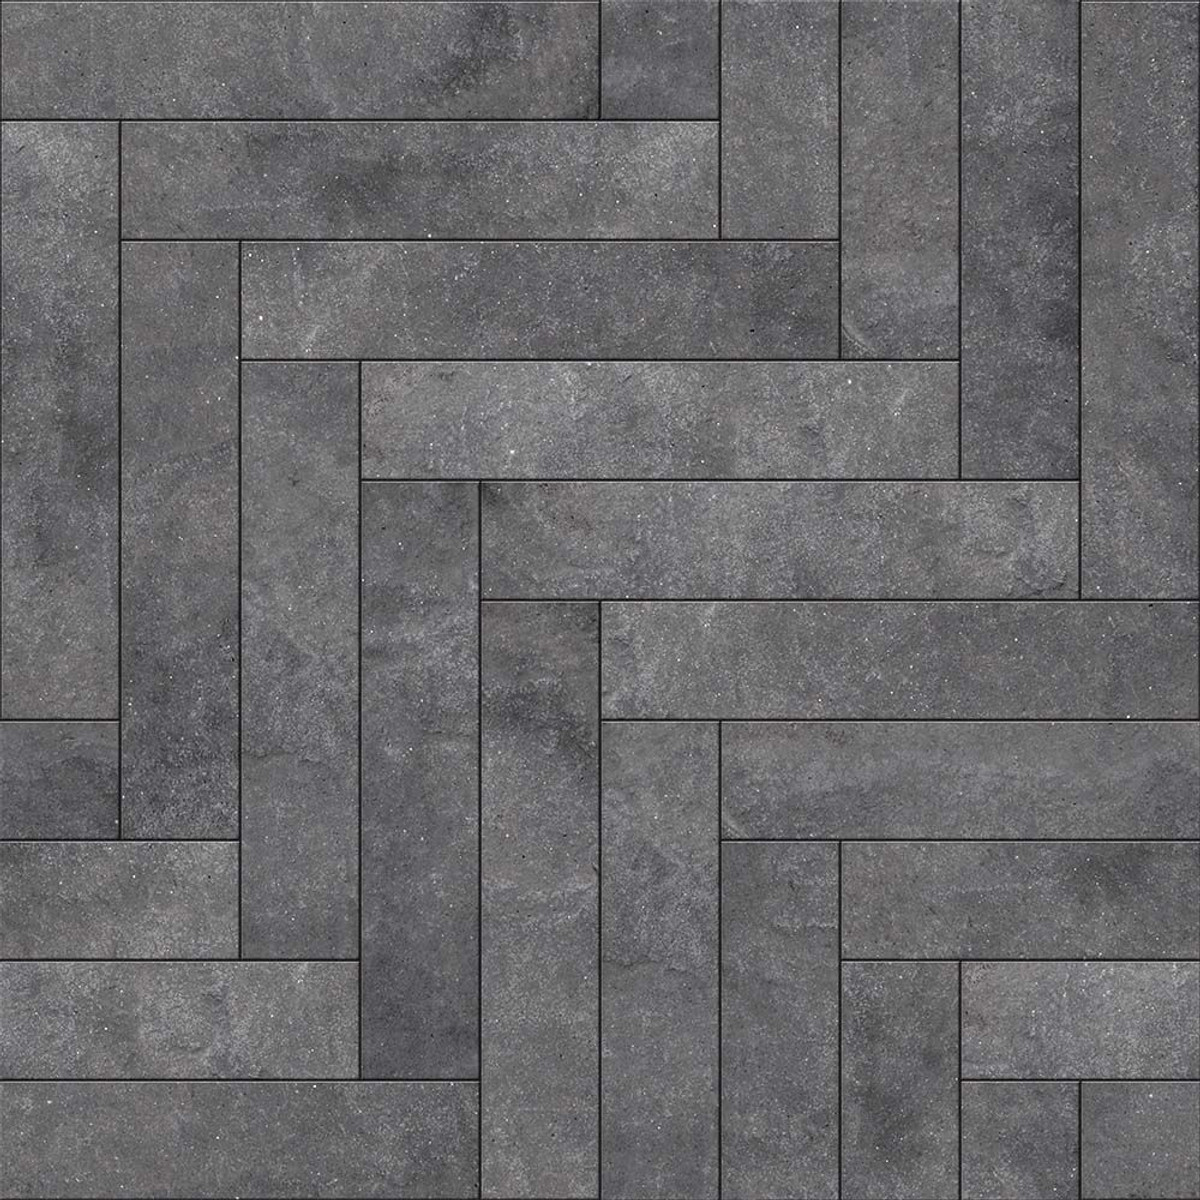 Perfection floor tile natural stone chevron blackstone 20 x 20 x perfection floor tile flexible interlocking tile in chevron blackstone dailygadgetfo Choice Image